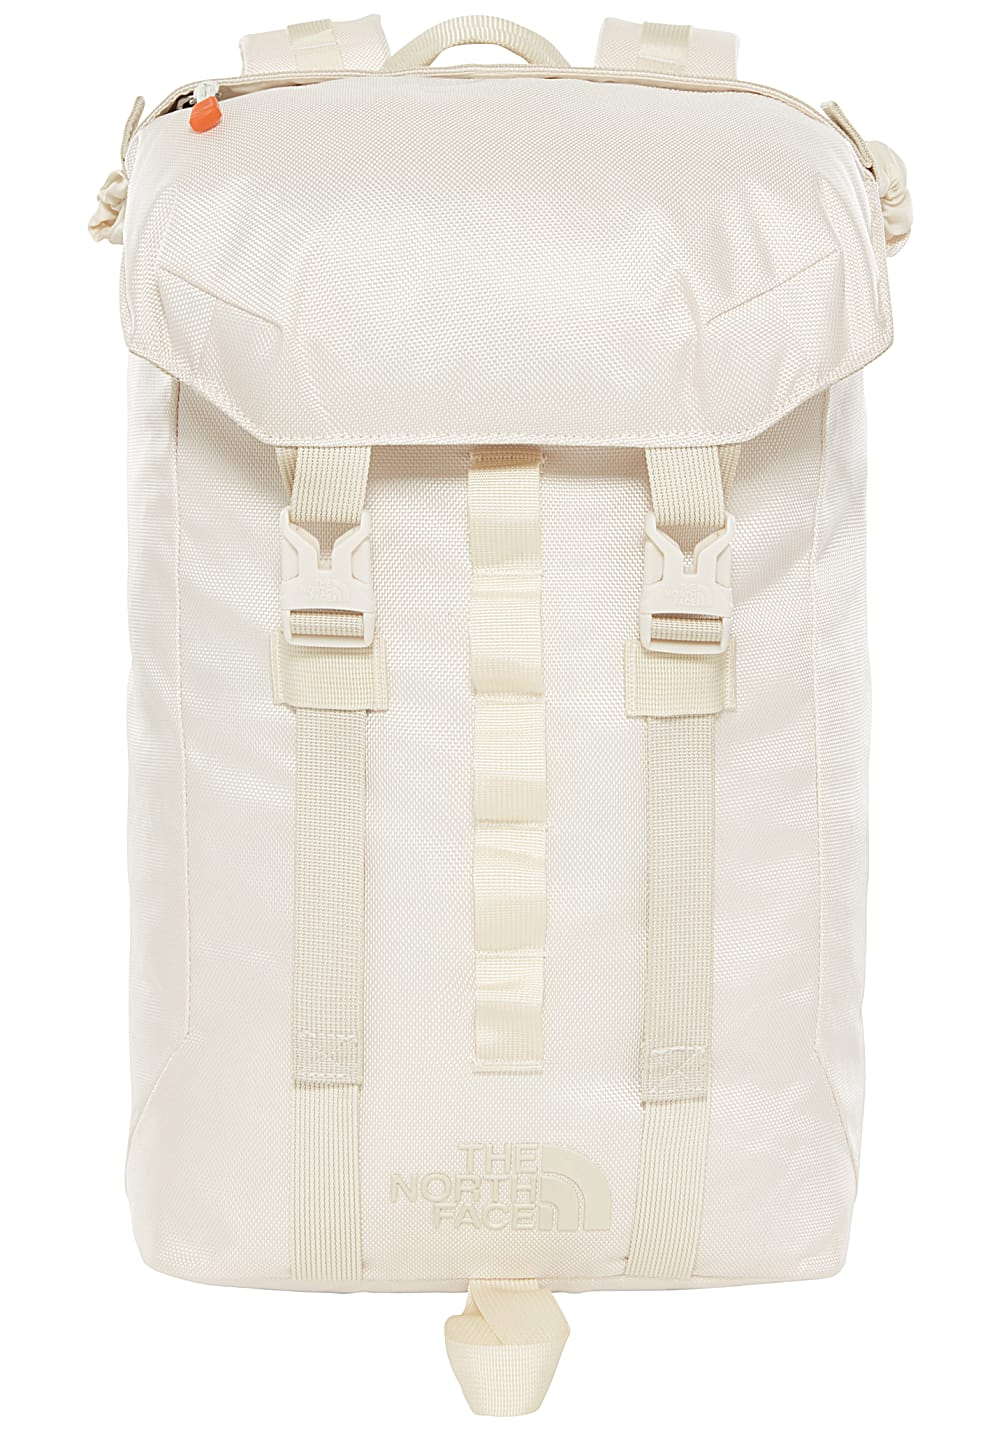 9948b9558 THE NORTH FACE Lineage Ruck 23L - Backpack - White - Planet Sports